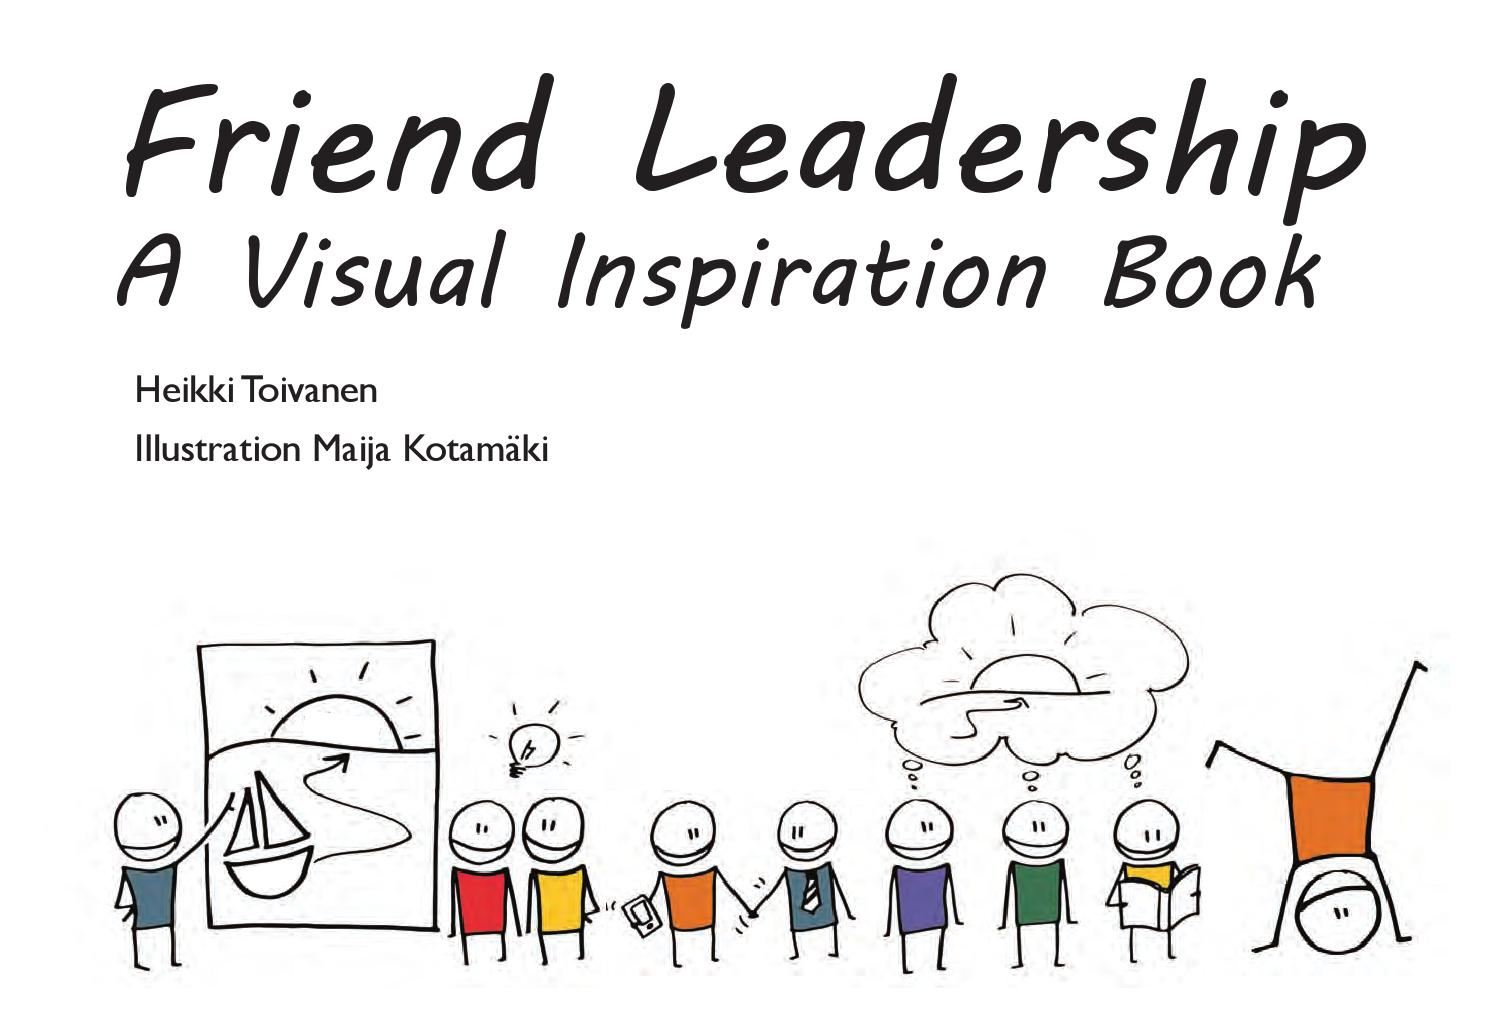 Friend leadership by Osuustoimintakeskus Pellervo - issuu